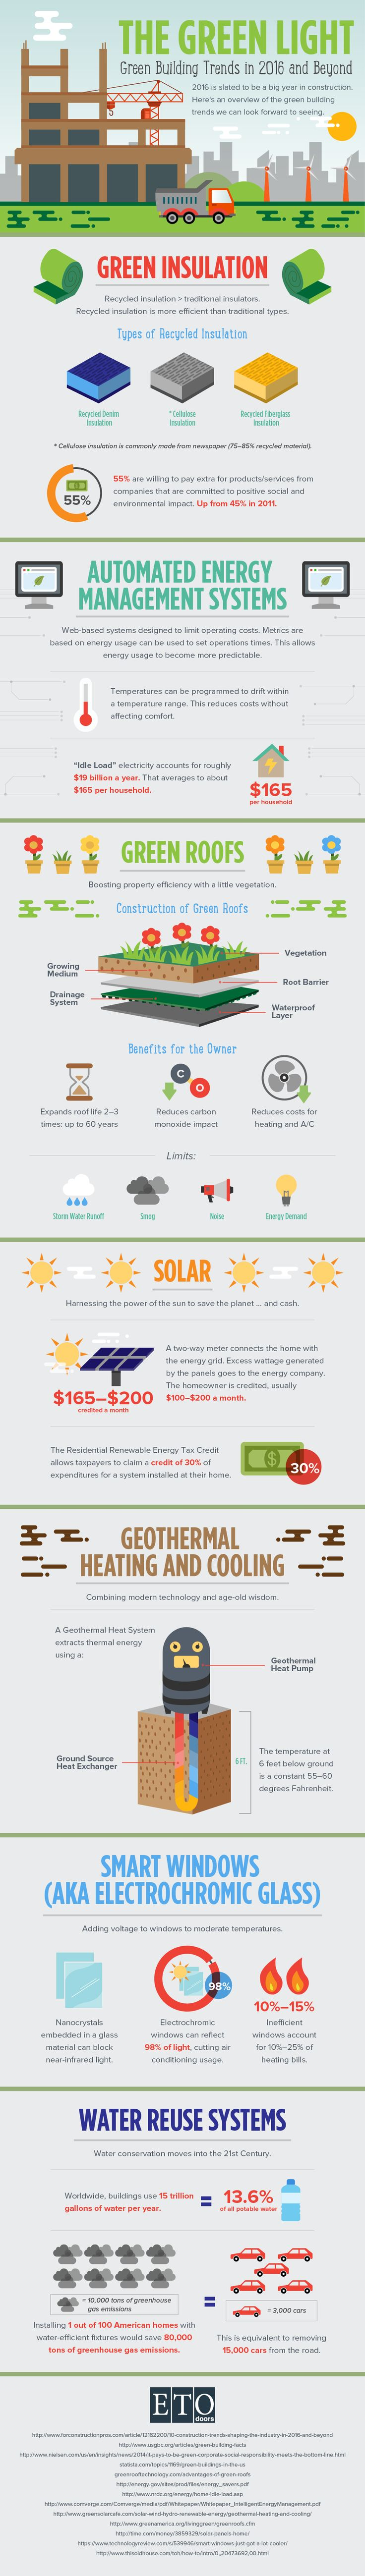 Green Building Trends in 2016 and Beyond #Infographic #Trends #Construction